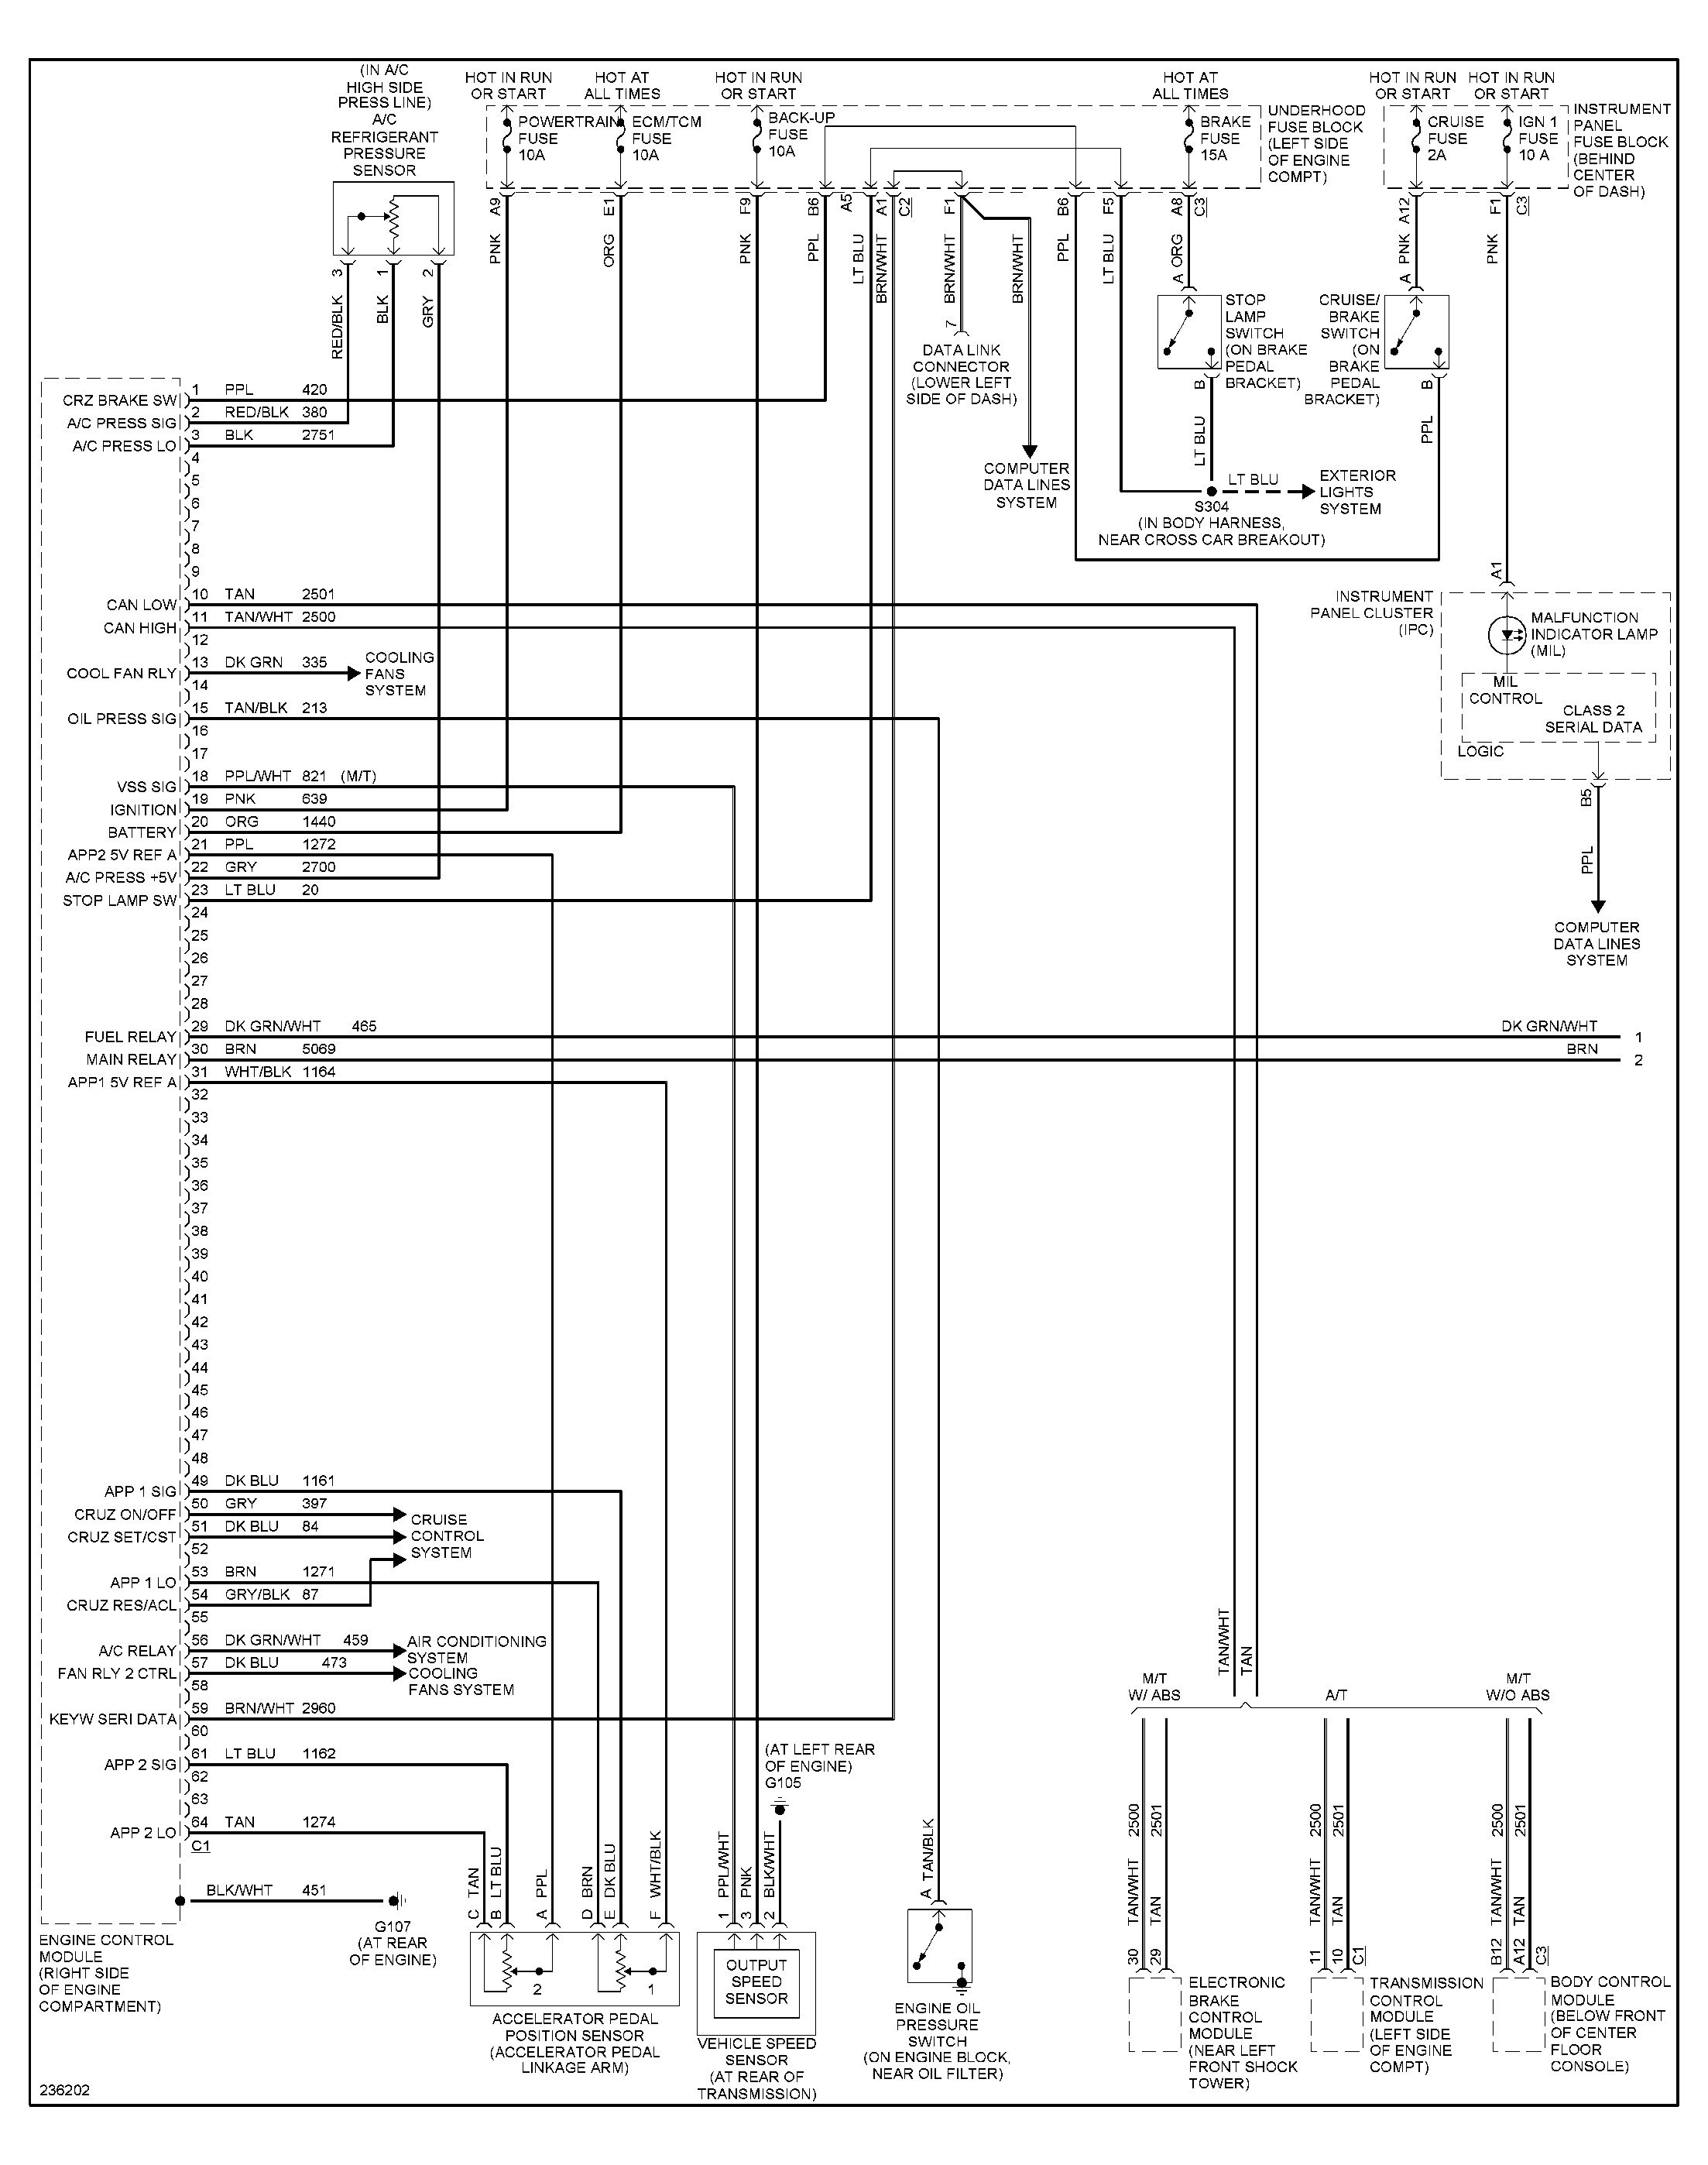 hayabusa wiring diagram for 95 ly 8597  wiring diagrams besides 3 wire rtd wiring diagram as well  wiring diagrams besides 3 wire rtd